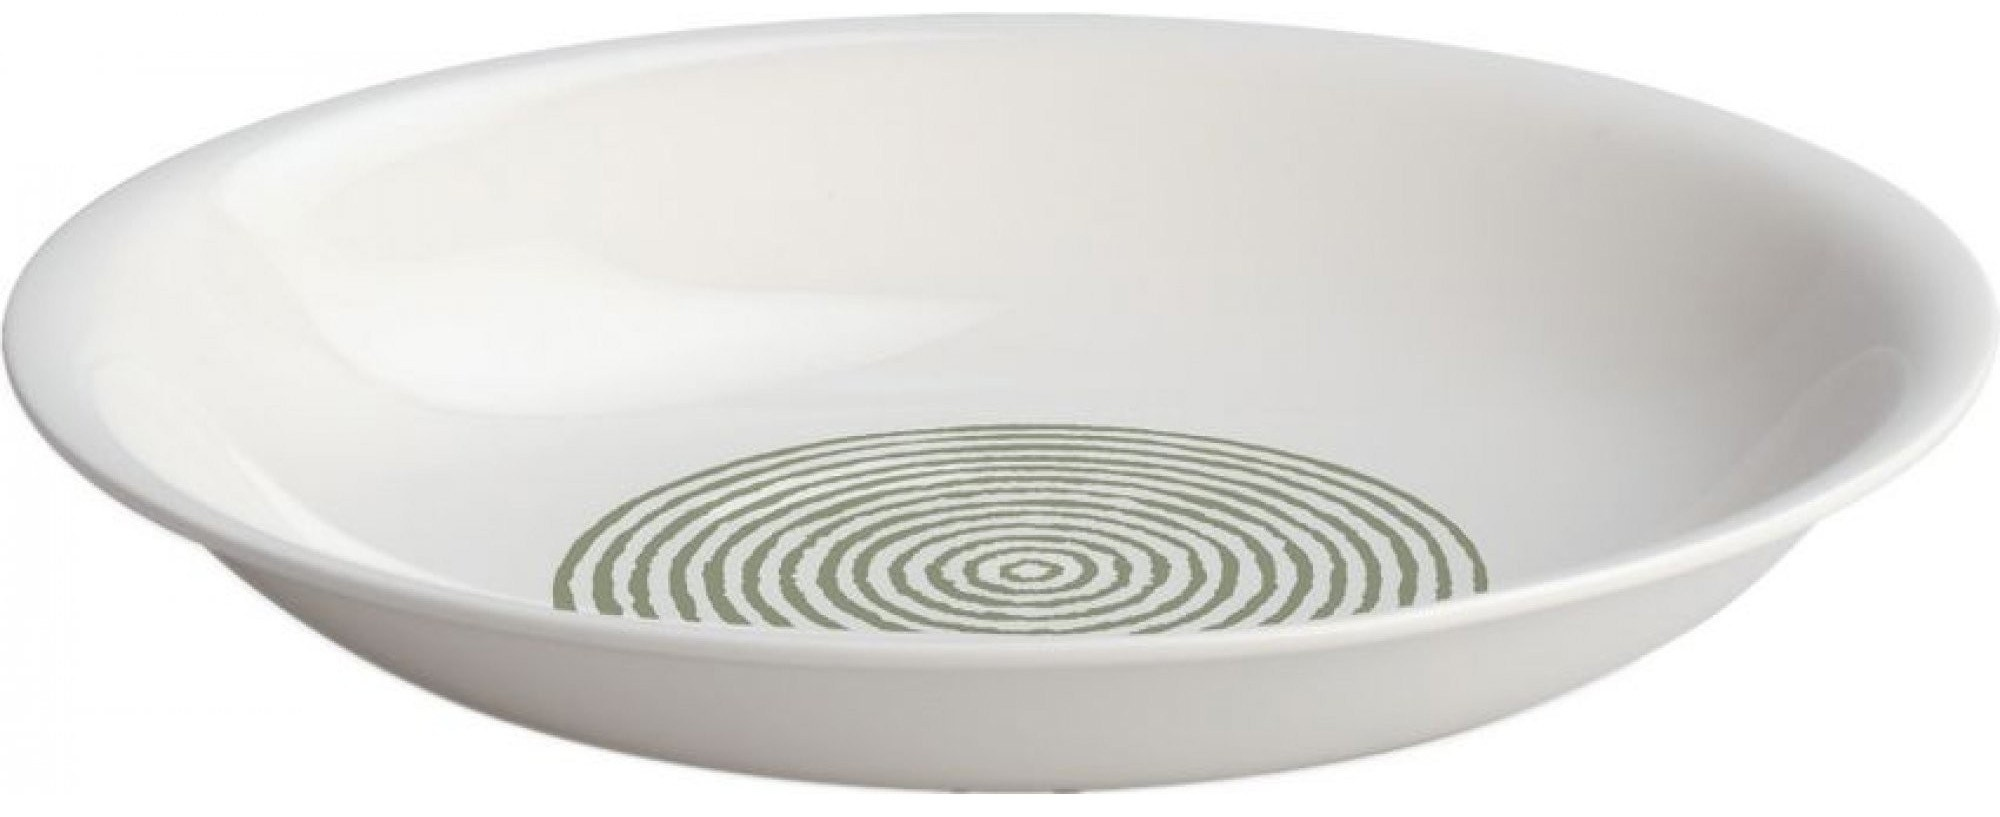 Alessi Acquerello Soup Bowl